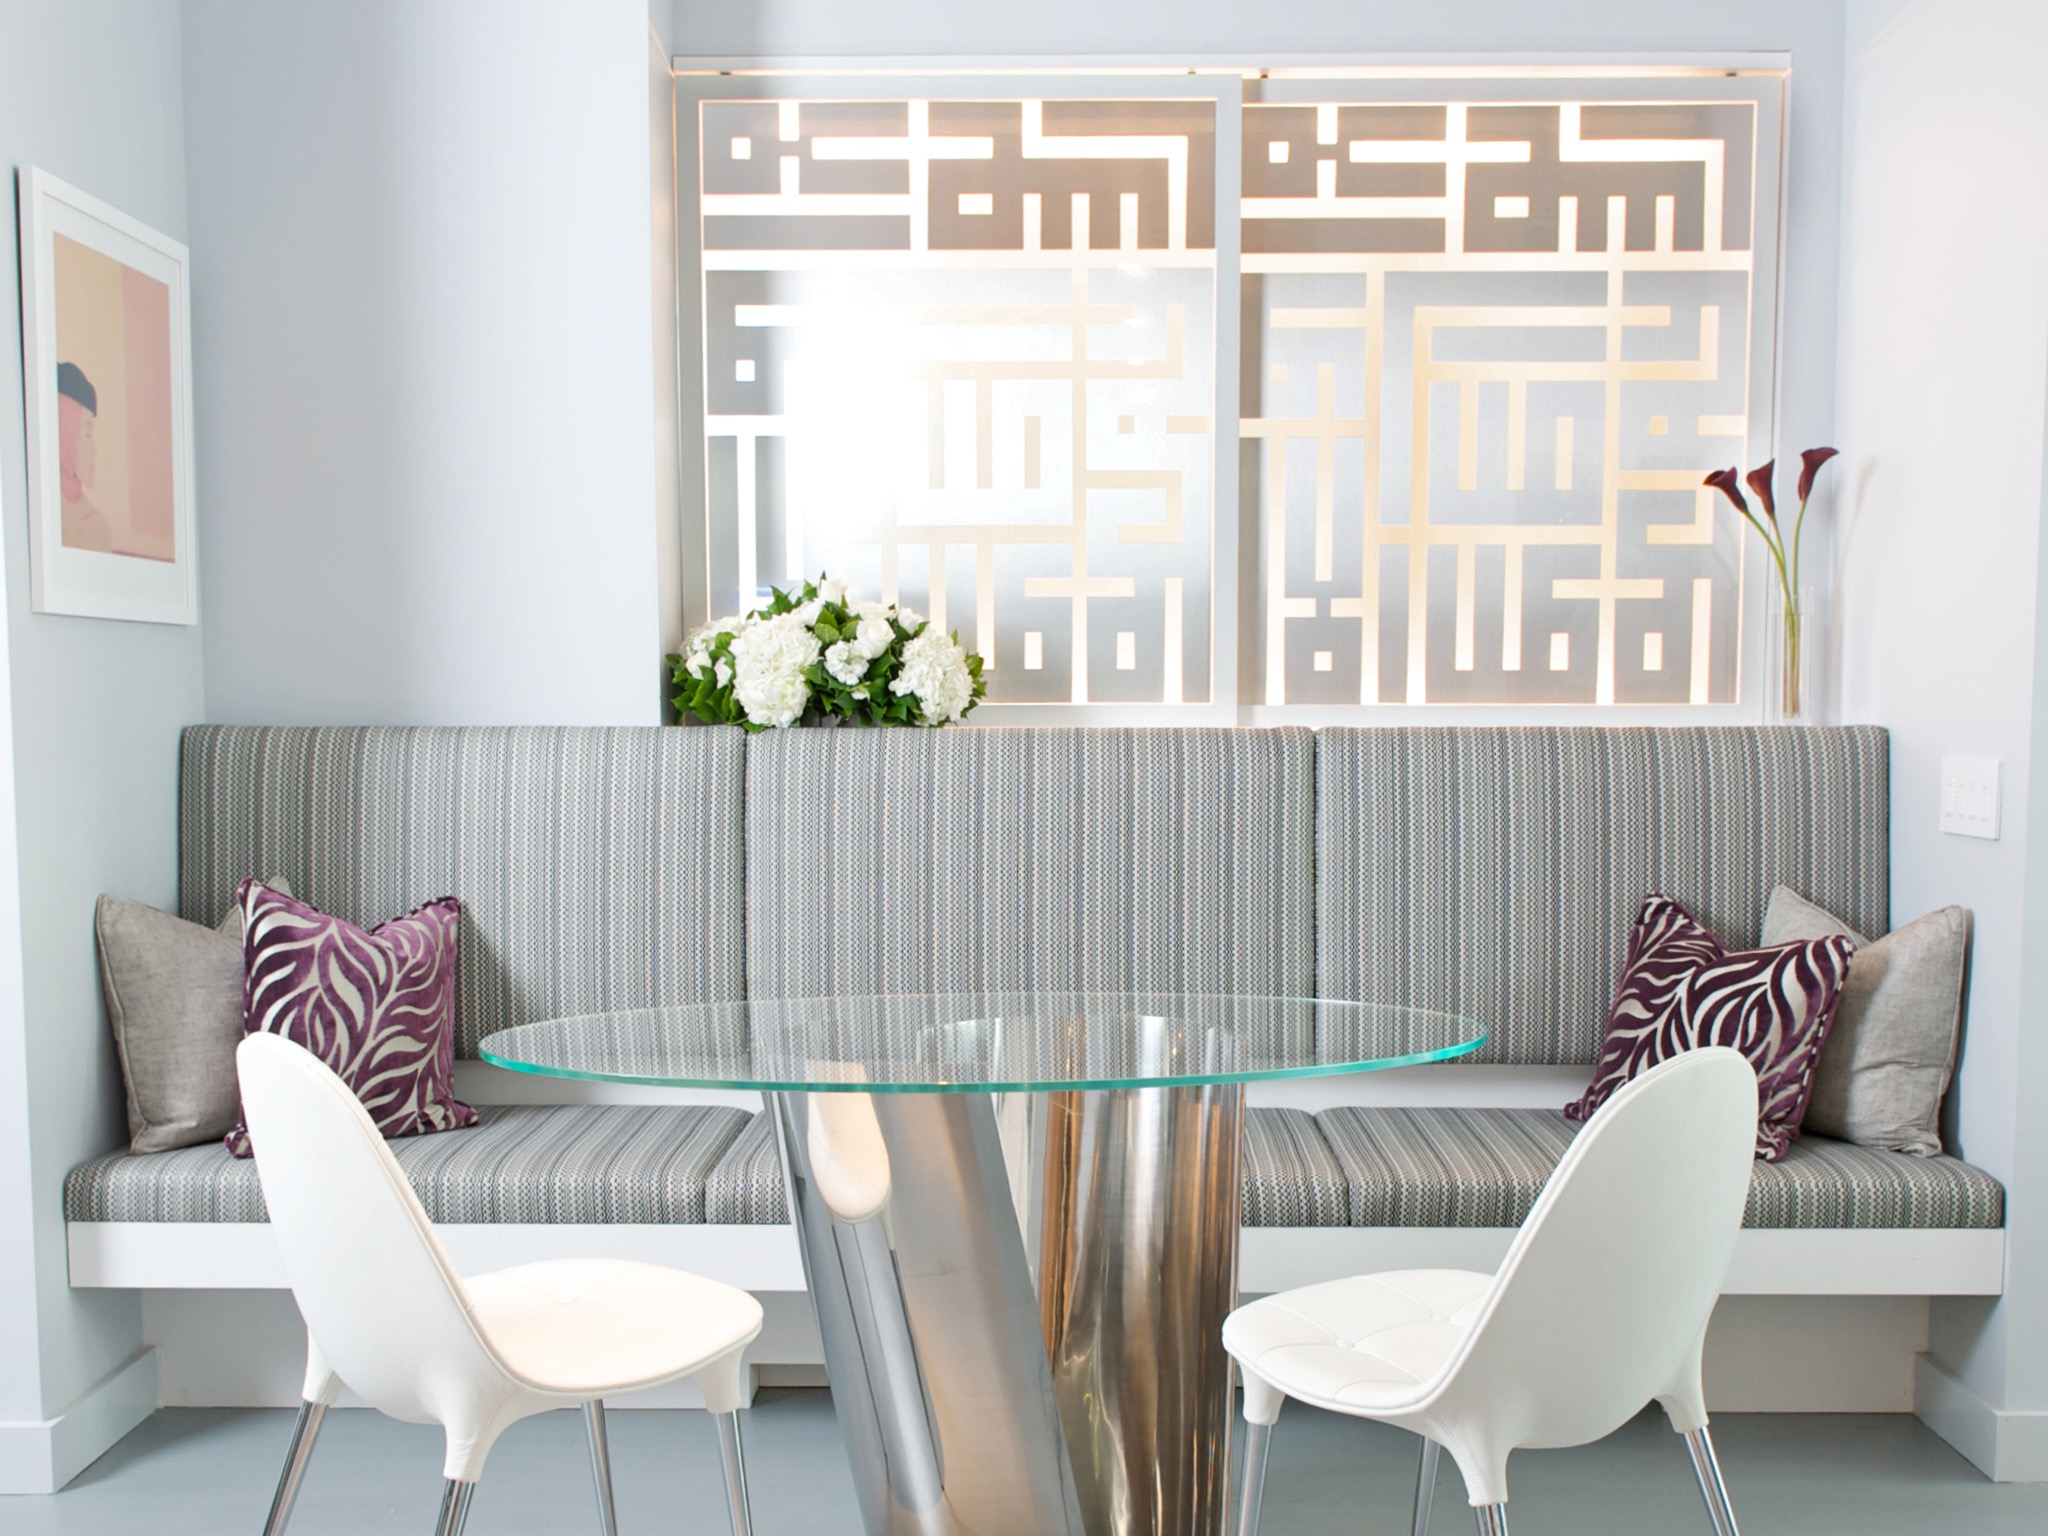 Minimalist Dining Room Dividers Decorative Design (View 3 of 14)